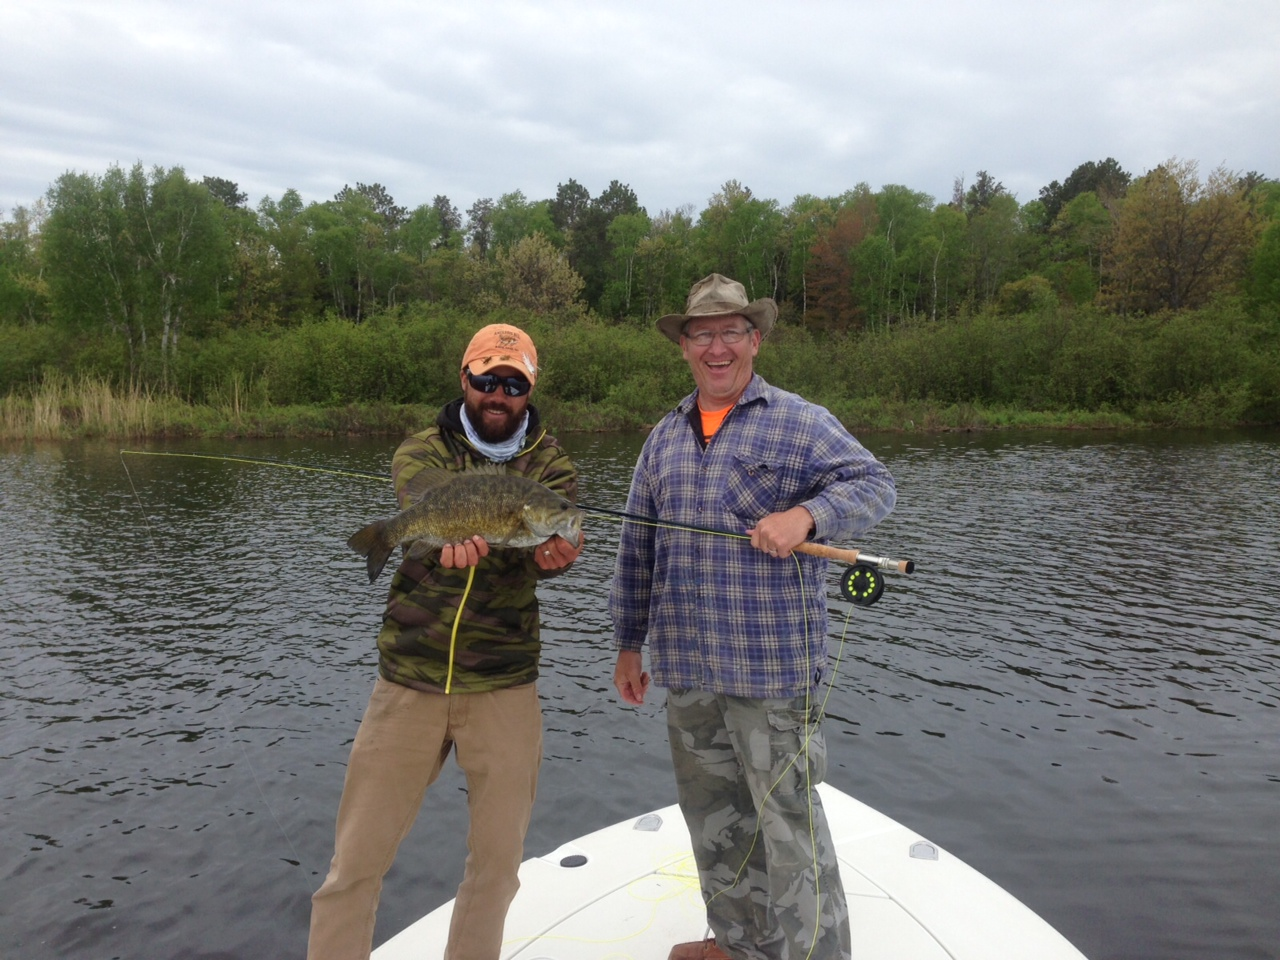 Jim had a solid day chasing smallies on the fly. A Clouser minnow was the top fly this day, but we found a few fish that came up and ate a popper, too.